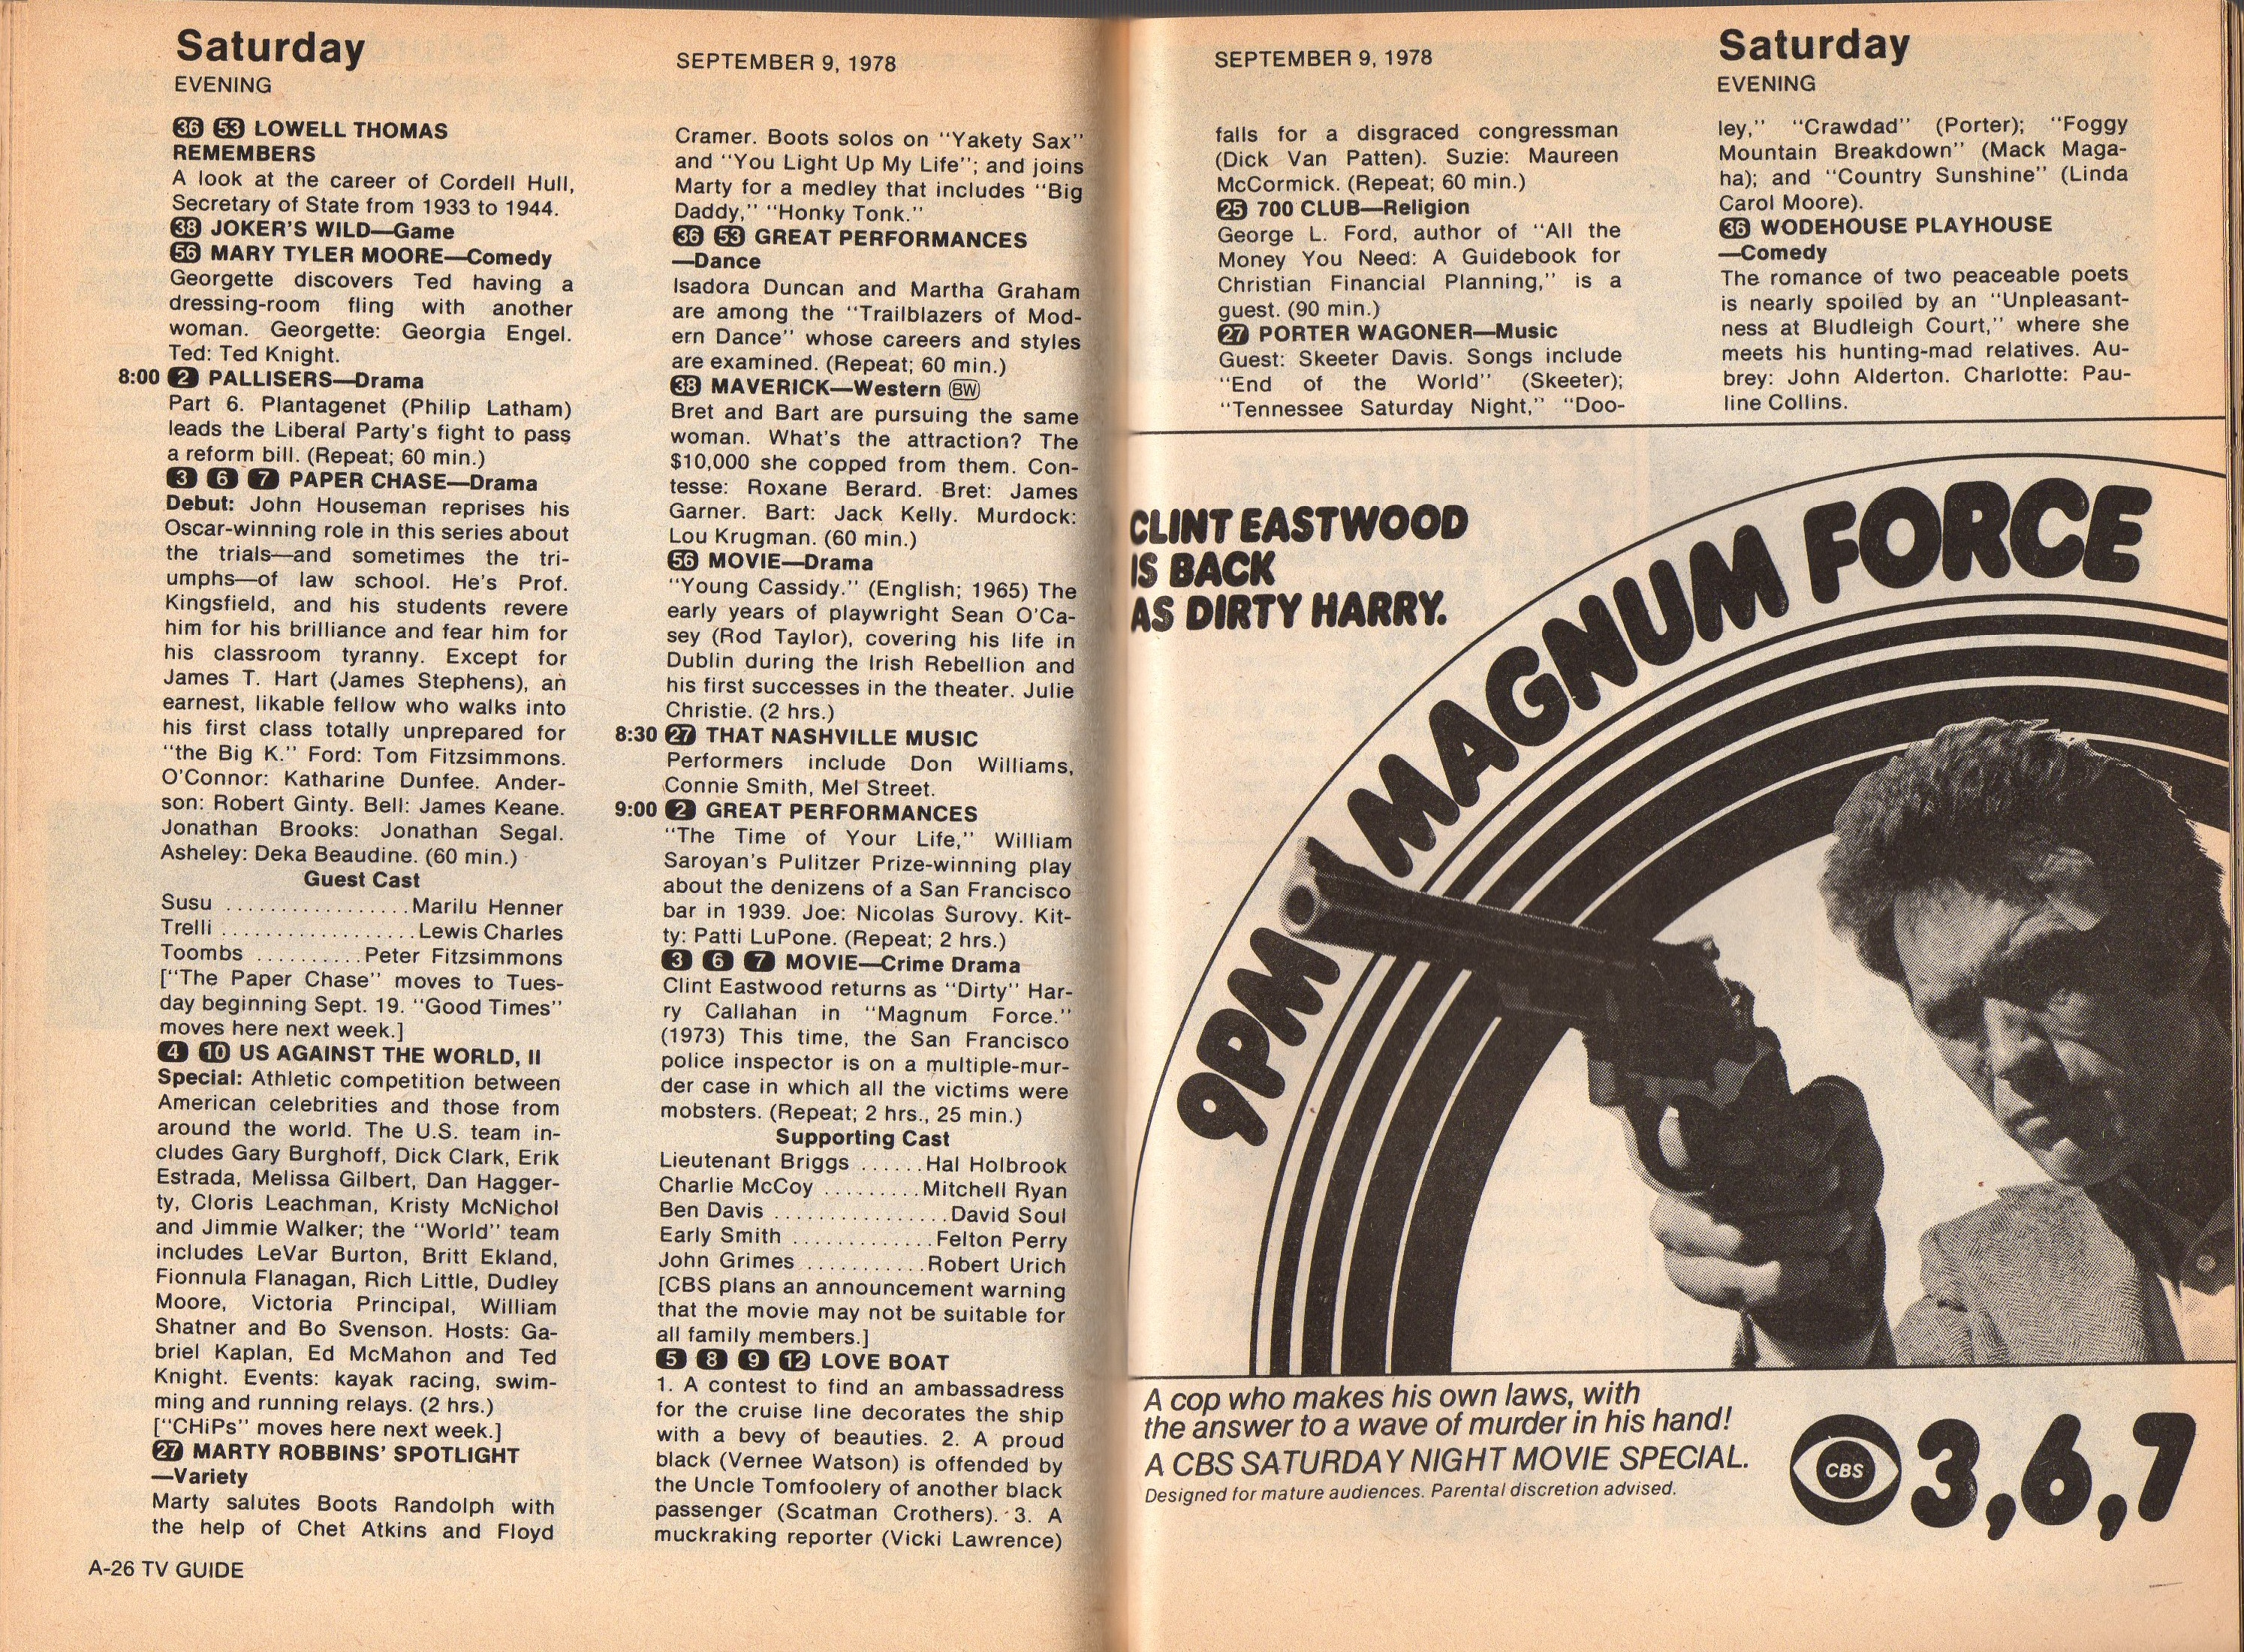 old tv guide various owner manual guide u2022 rh justk co 1977 TV Guide Fall Preview TV Schedule Tonight